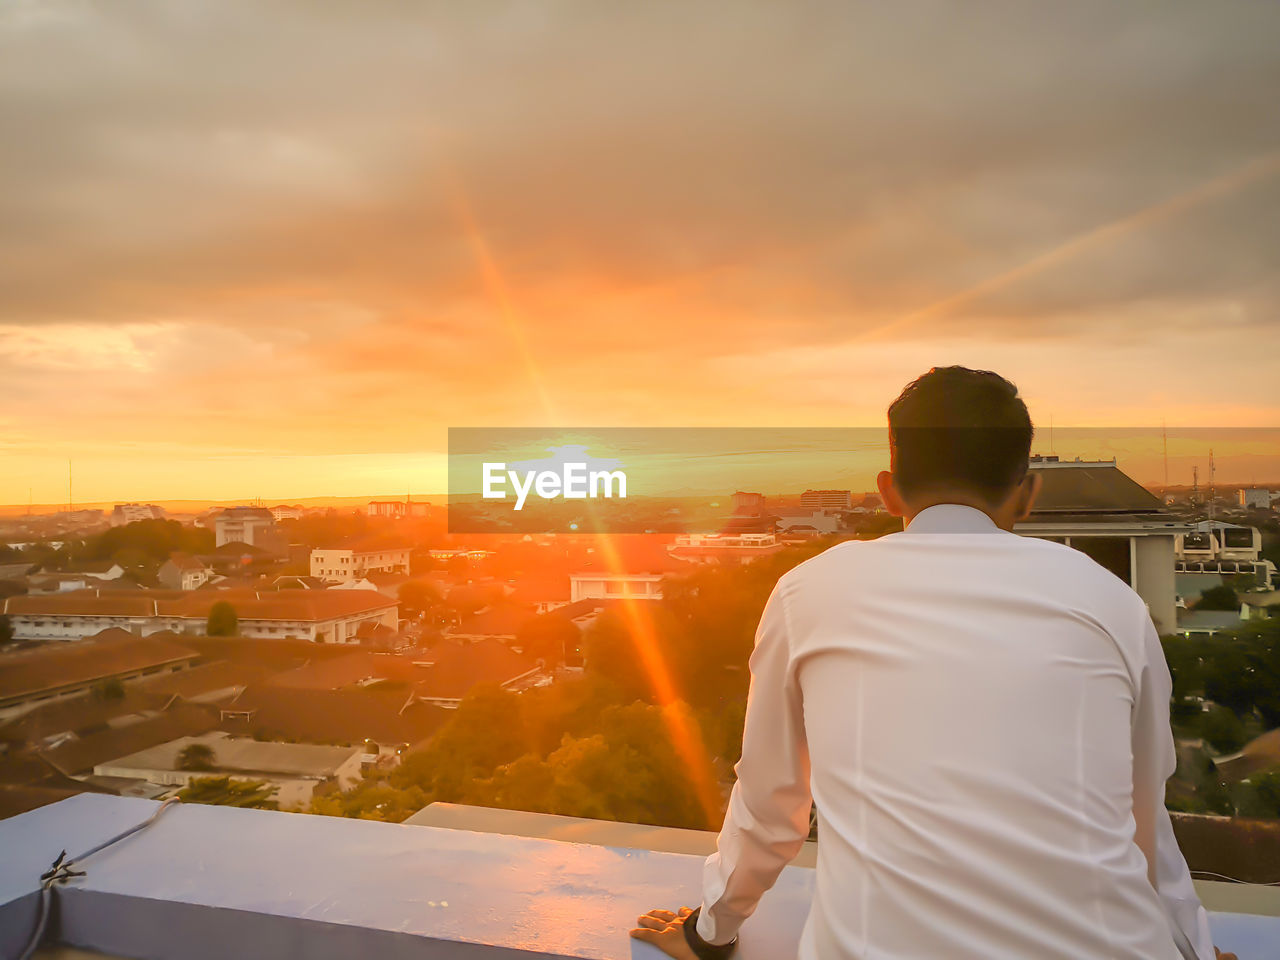 sunset, sky, rear view, architecture, one person, building exterior, built structure, cloud - sky, men, standing, orange color, real people, nature, city, lifestyles, leisure activity, sunlight, cityscape, sun, waist up, outdoors, lens flare, looking at view, contemplation